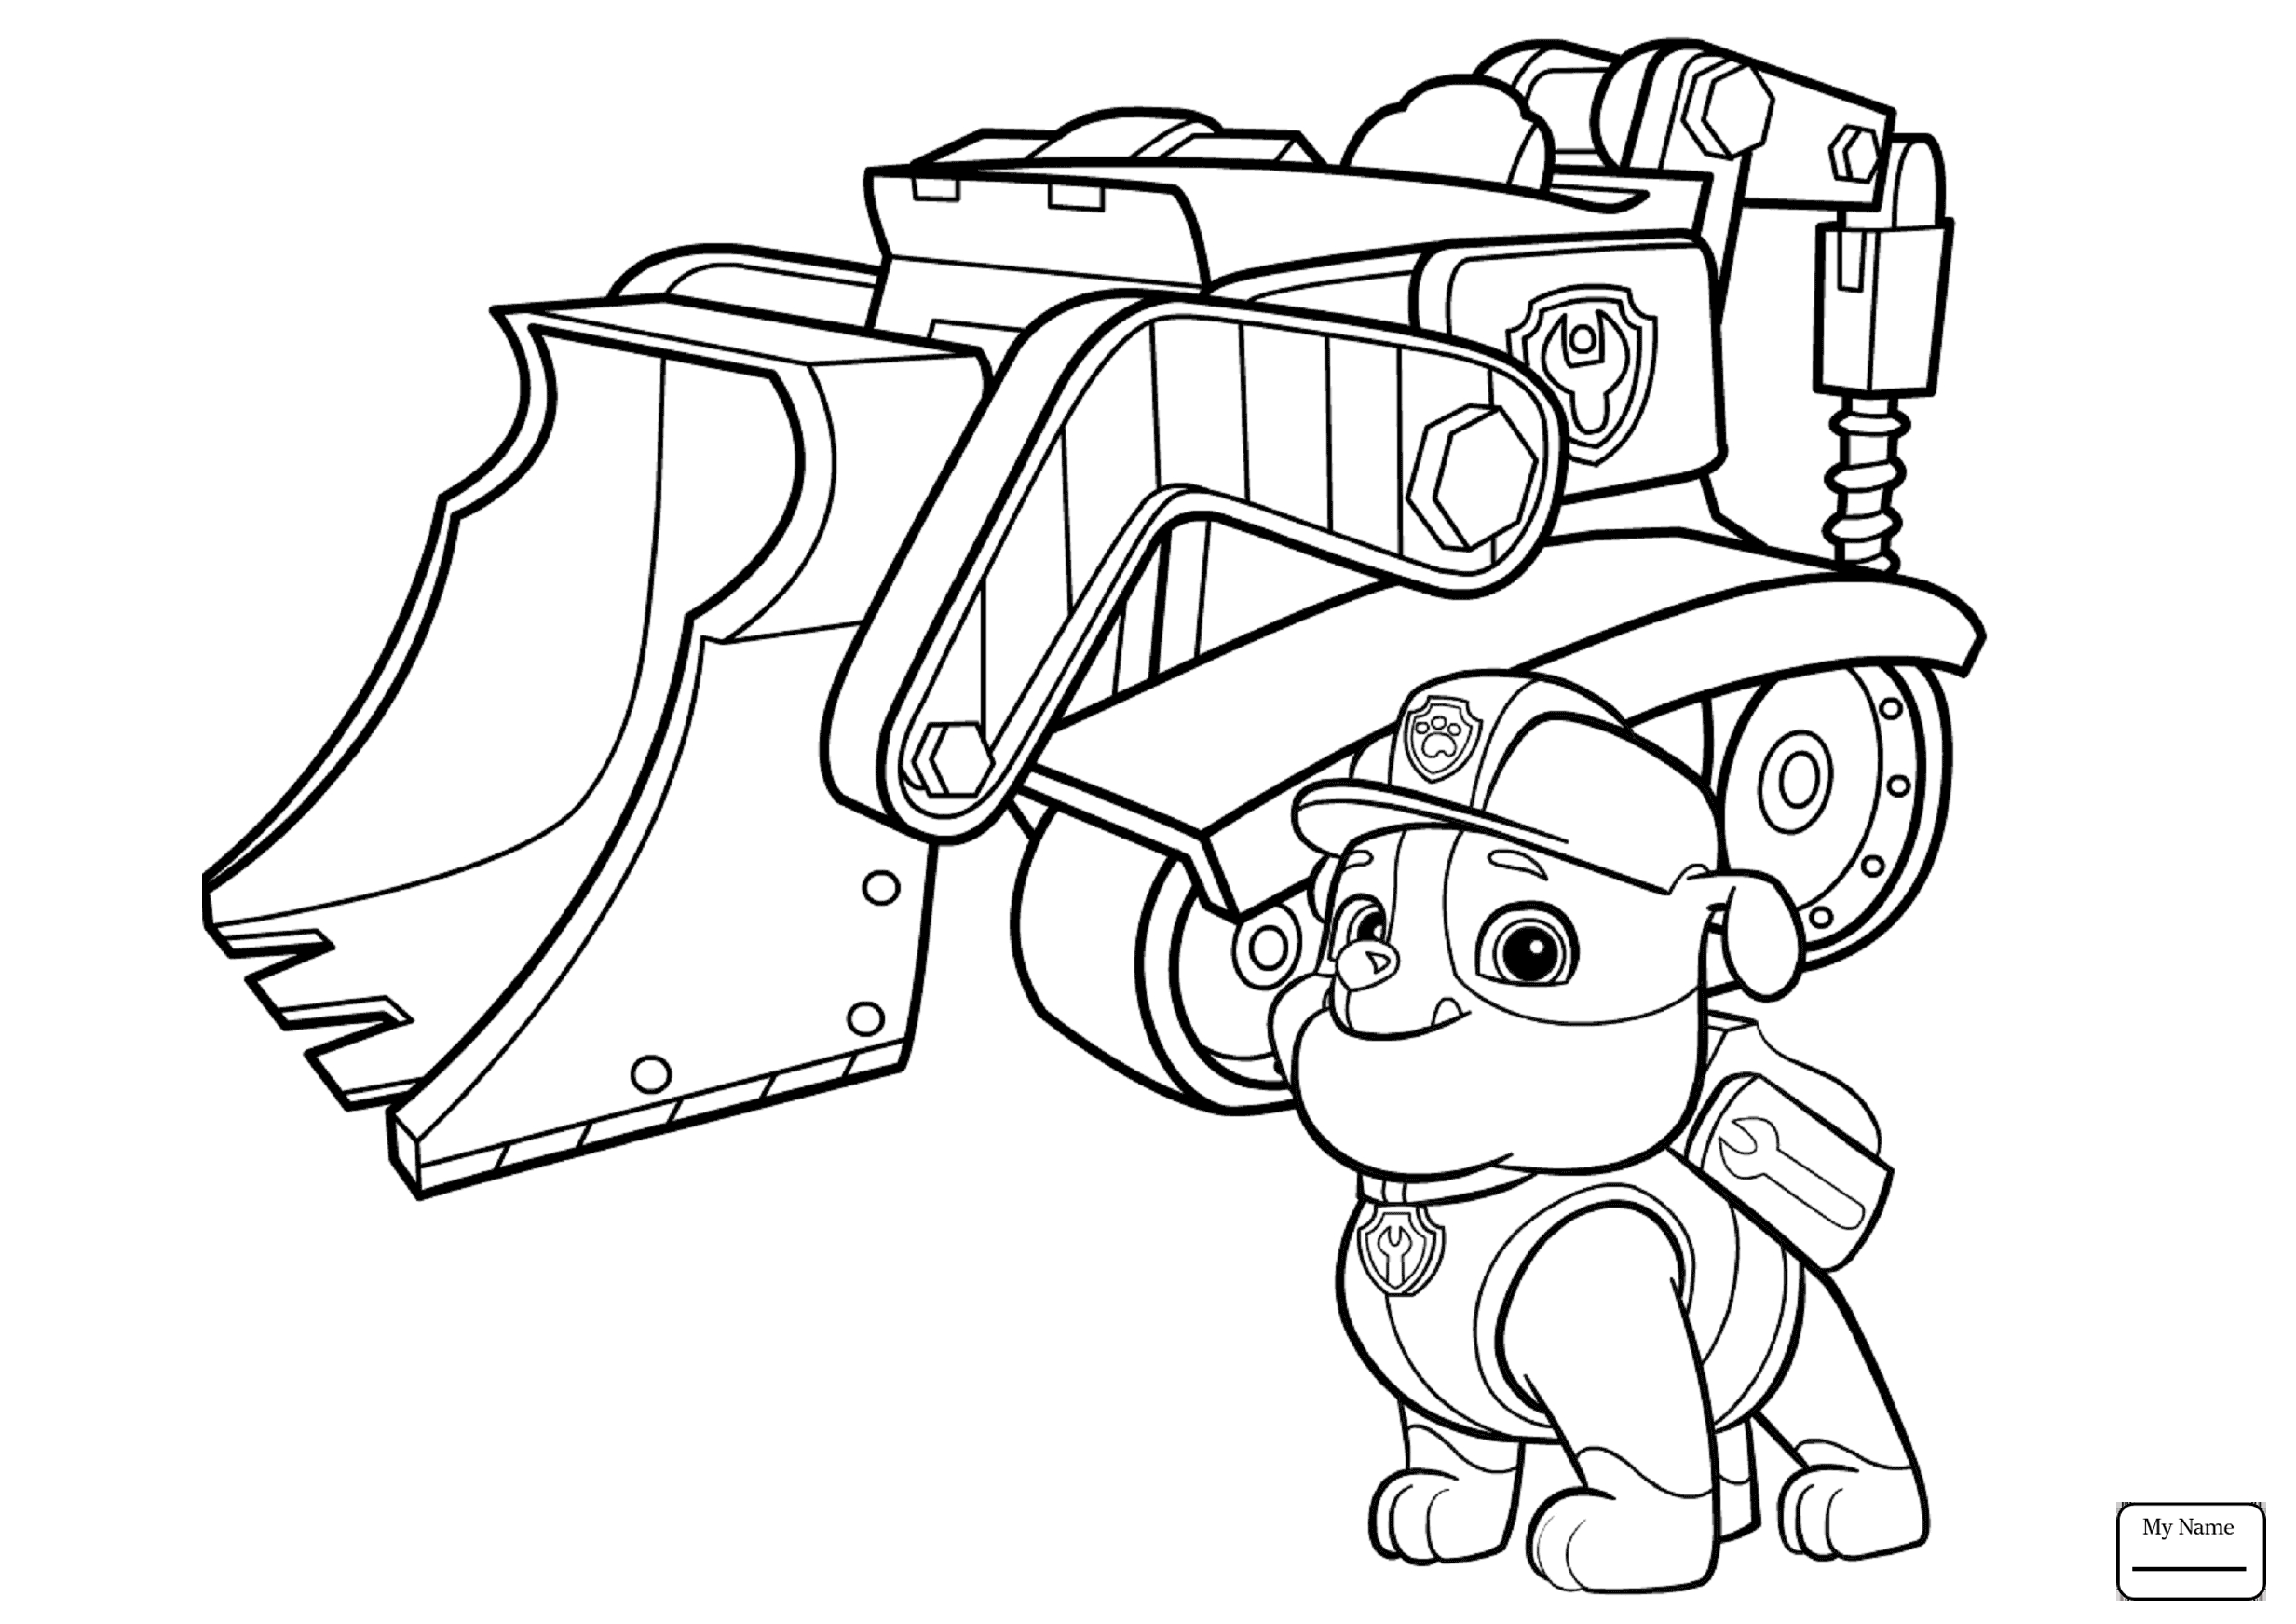 Everest Paw Patrol Coloring Pages at GetDrawings | Free ...